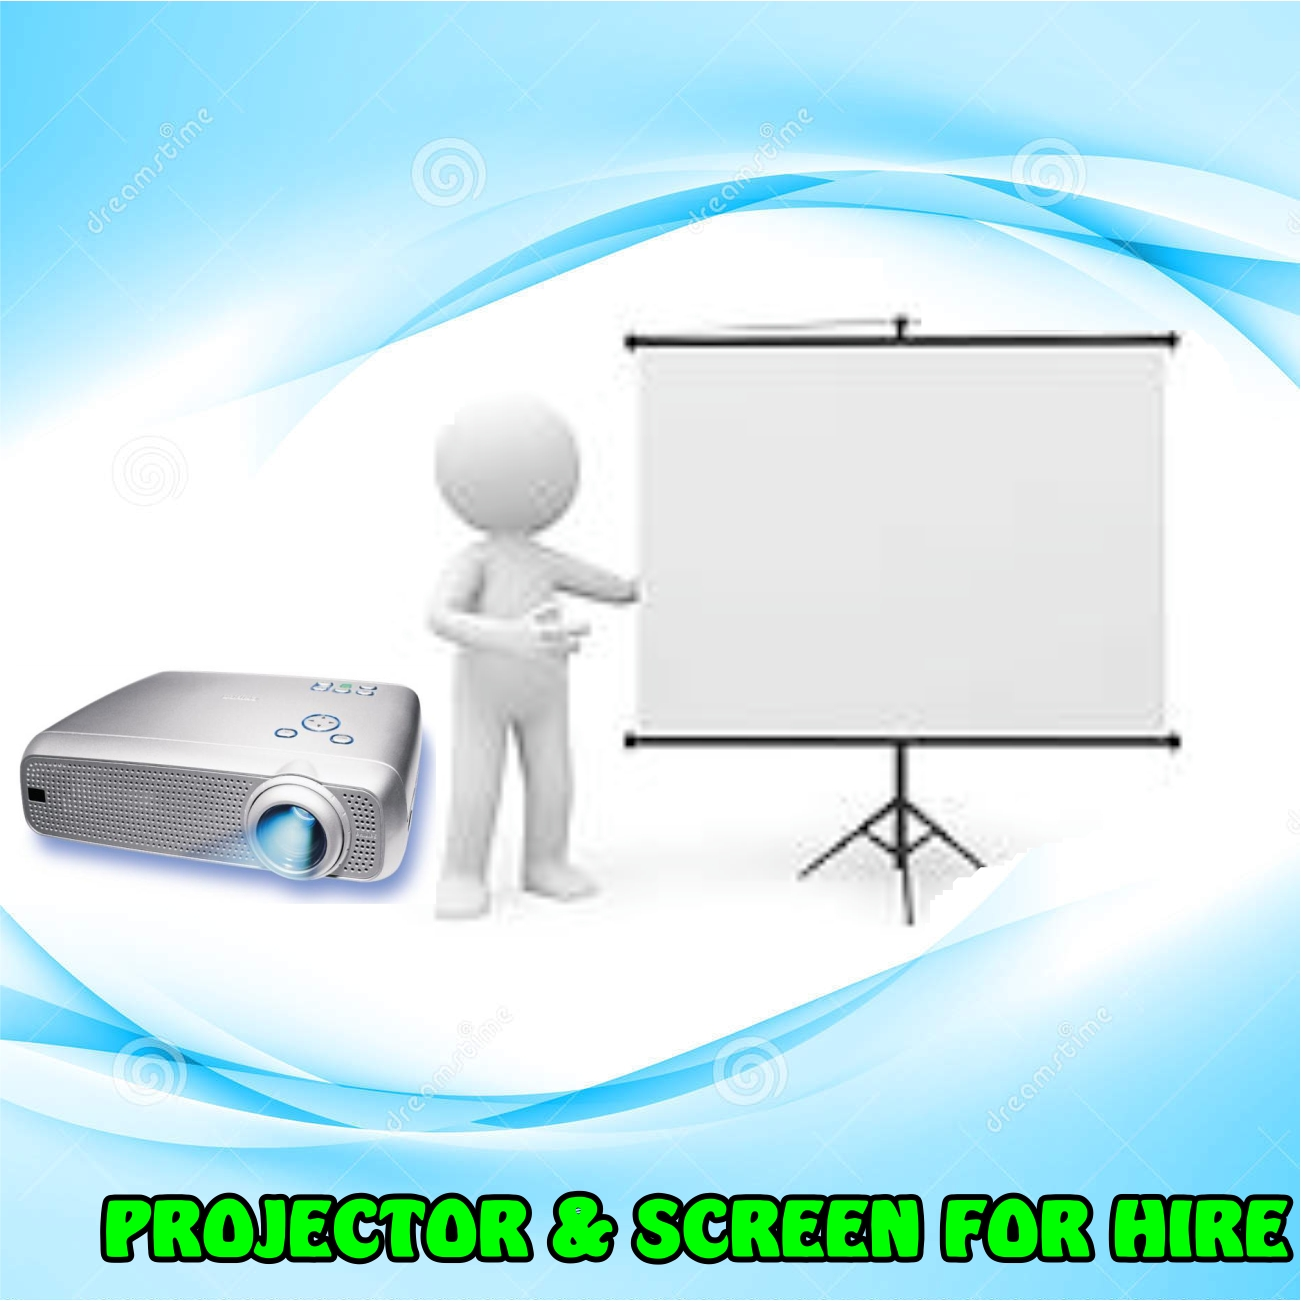 PROJECTOR AND SCREENS FOR HIRE IN DURBAN AUDIO VISUAL PROJECTOR AND SCREEN FOR HIRE IN DURBAN 0315072736 POWER POINT PROJECTIONS  0315072736 AT GRAVITY SOUND AND LIGHTING STORE IN DURBAN 0315072463 VISUAL PRESENTATION VIA BIG PROJECTION SCREEN AT GRAVITY DJ STORE EQUIPMENT PROJECTIONS FOR HIRE 0315072463